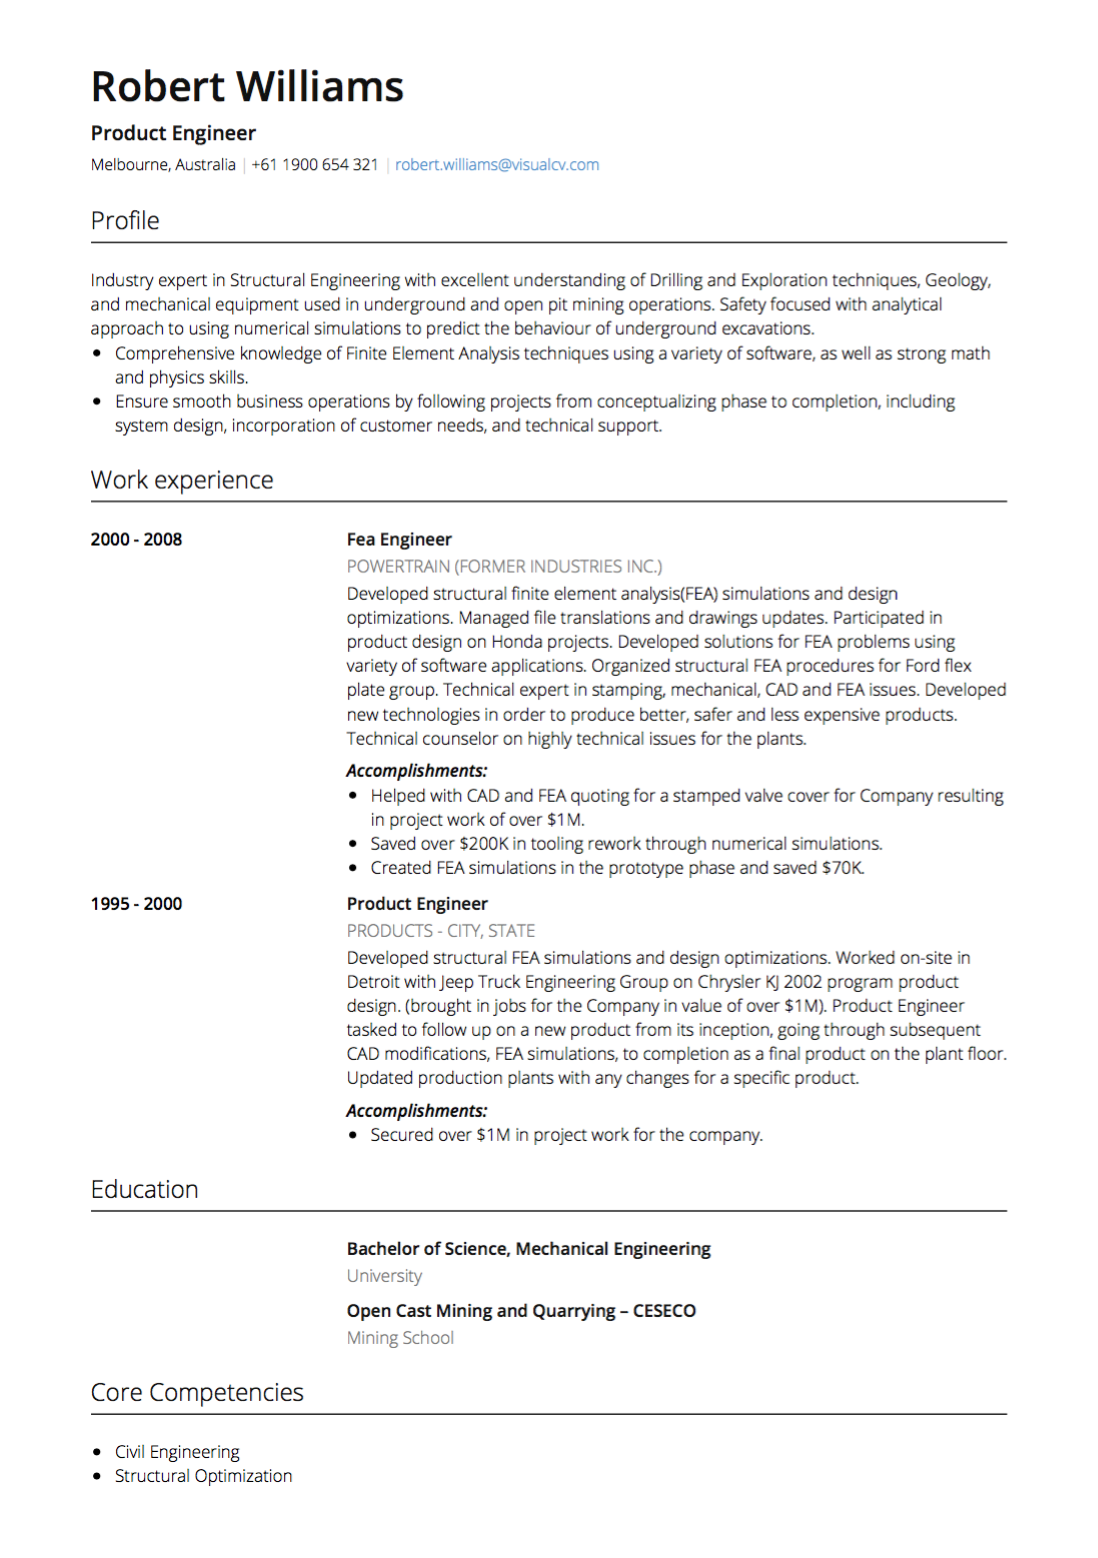 Resume Objective Types and Examples - Fotolip